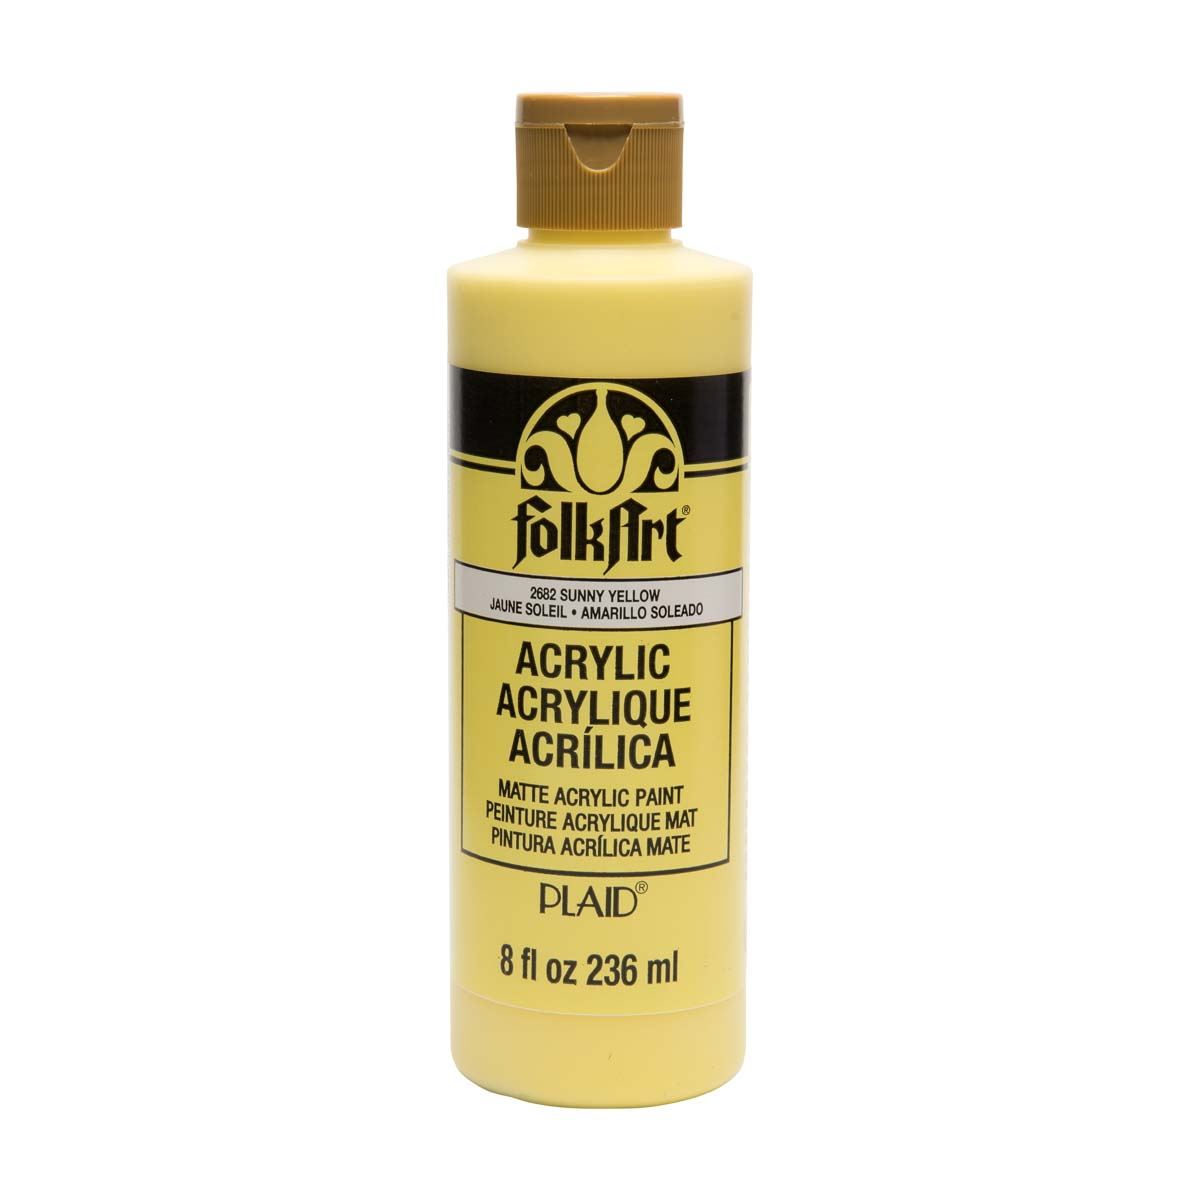 FolkArt ® Acrylic Colors - Sunny Yellow, 8 oz. - 2682